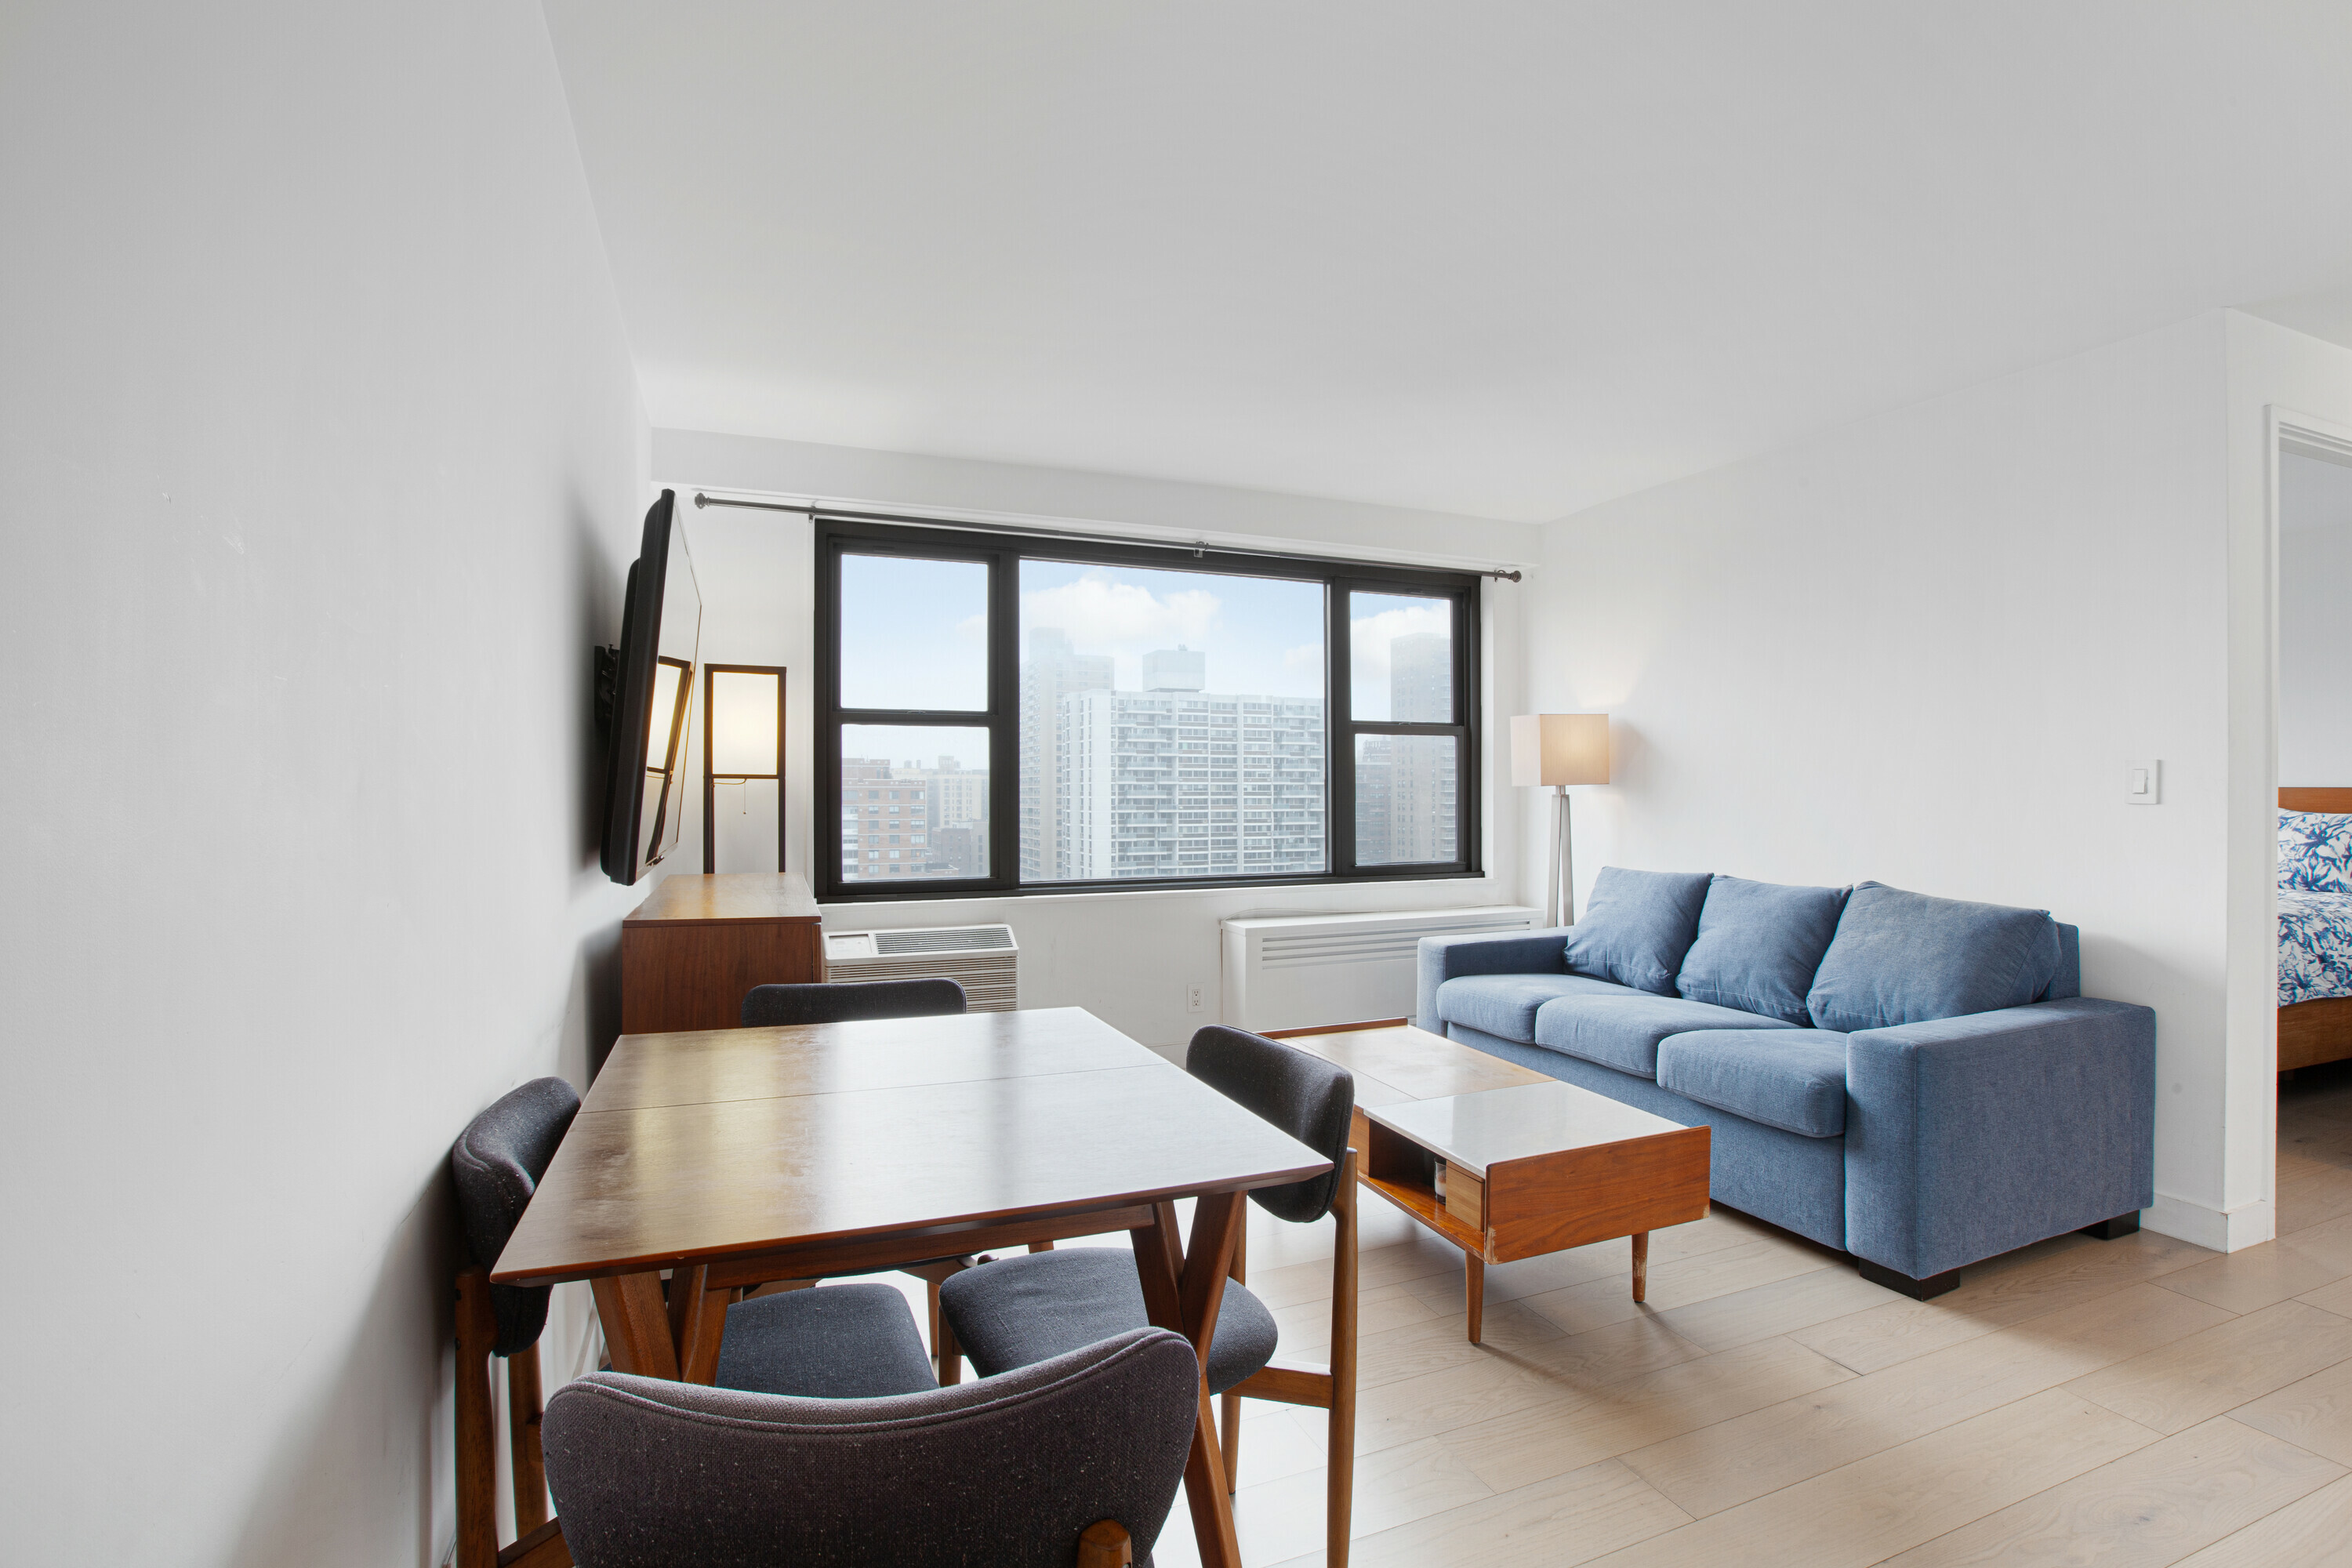 Apartment for sale at 175 West 95th Street, Apt 18J